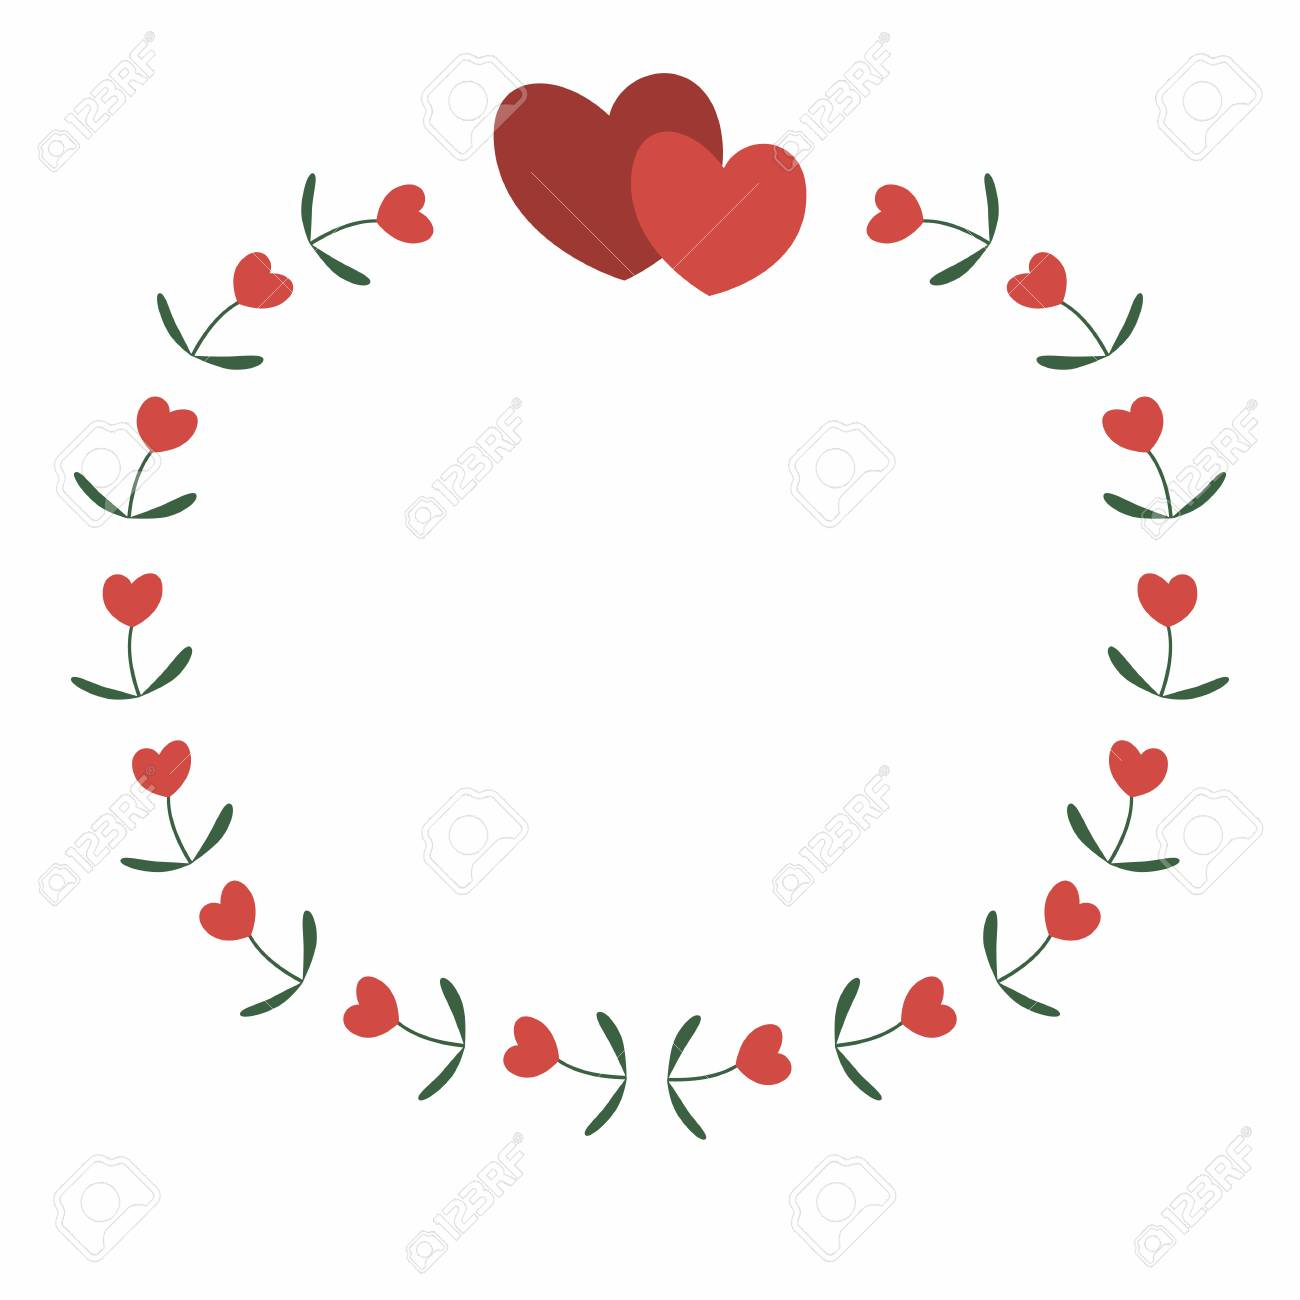 Round frame of flowers and hearts simple decor of floral elements in a flat style